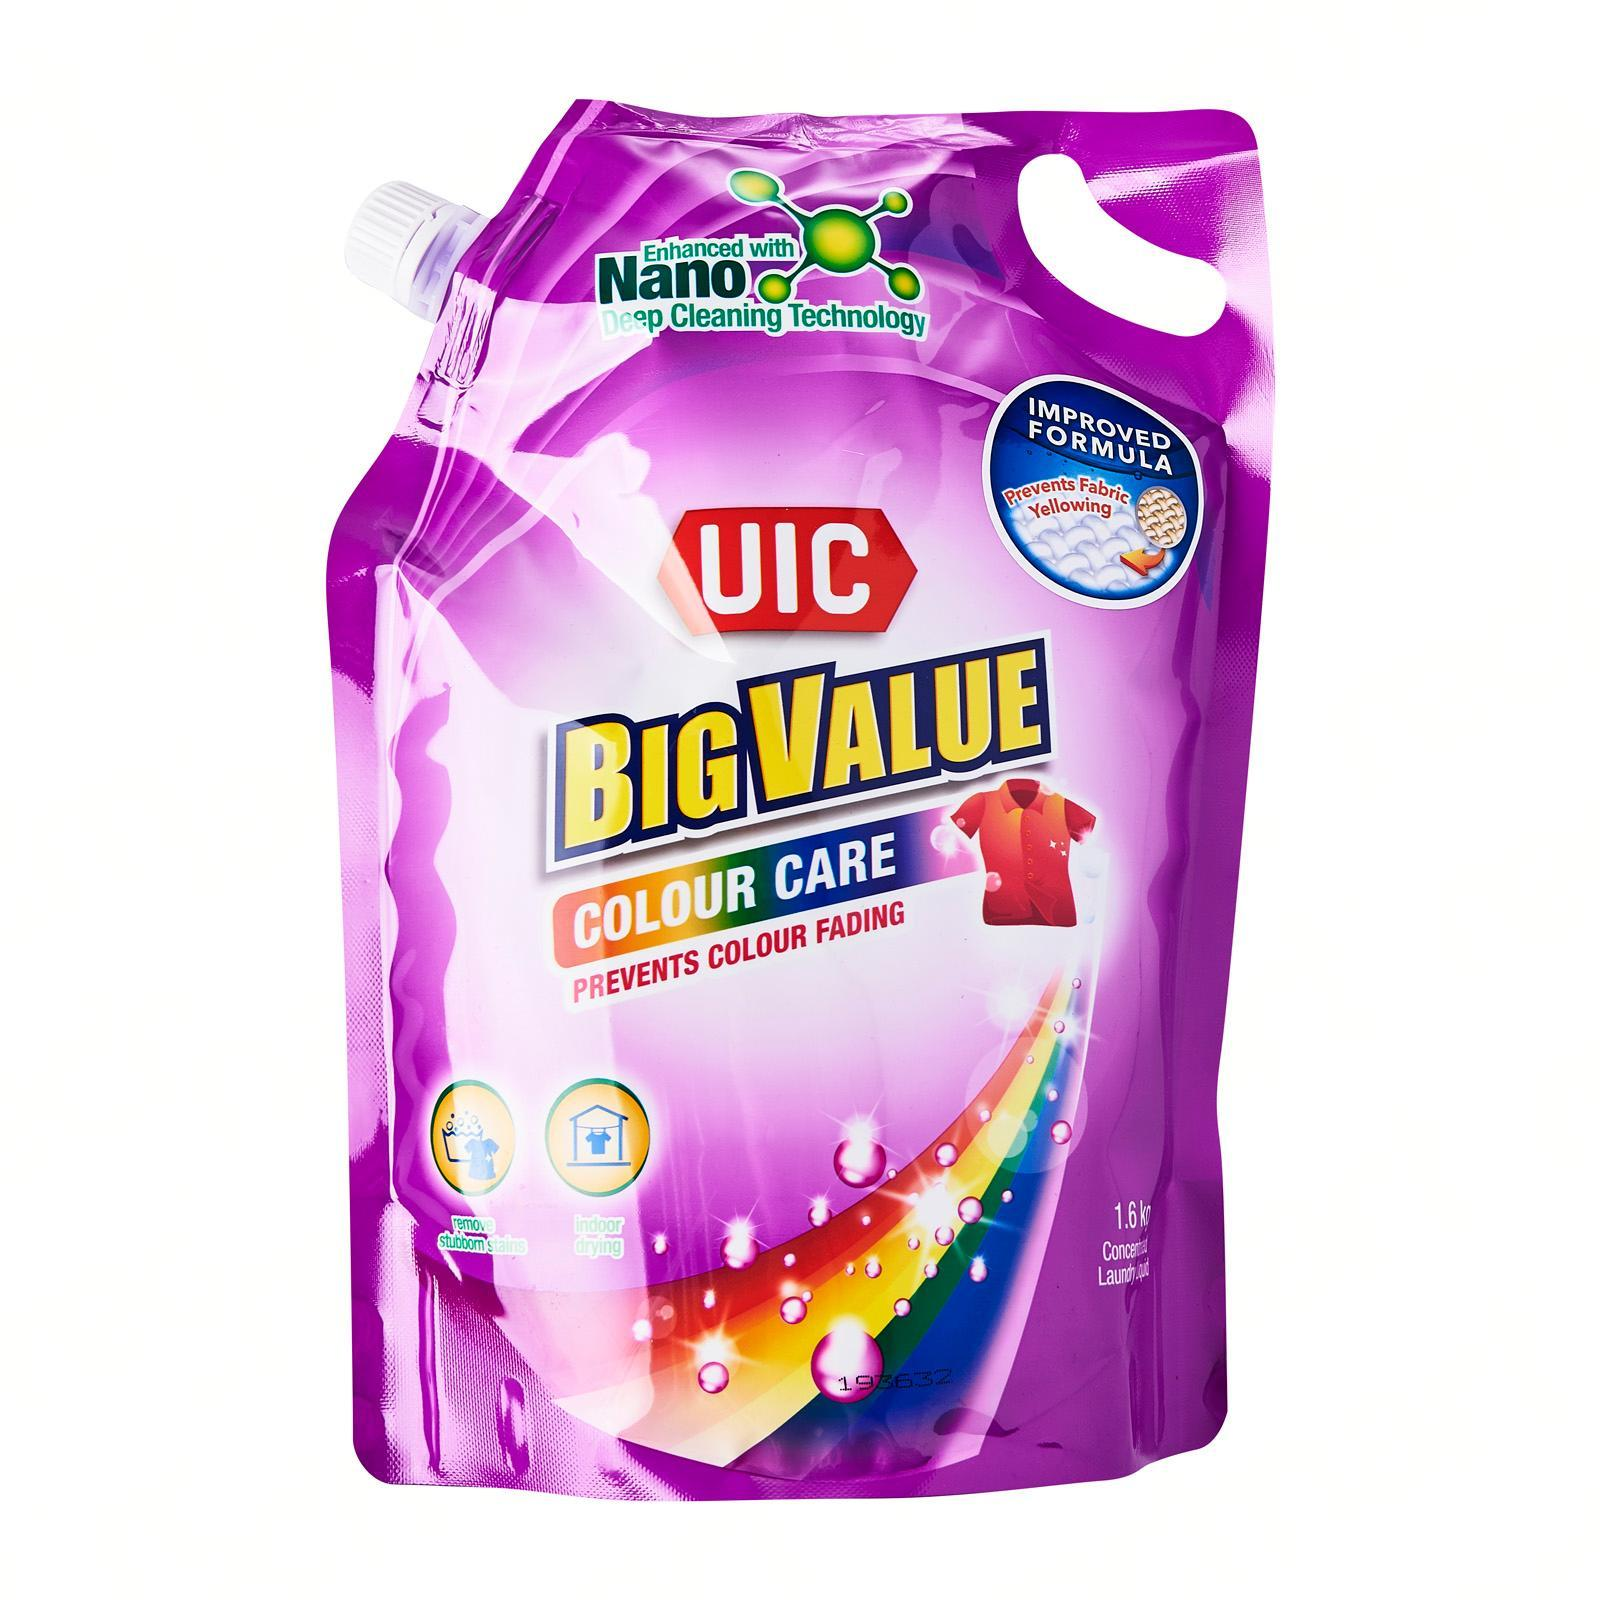 UIC Big Value Colour Care Liquid Laundry Detergent Refill Pack